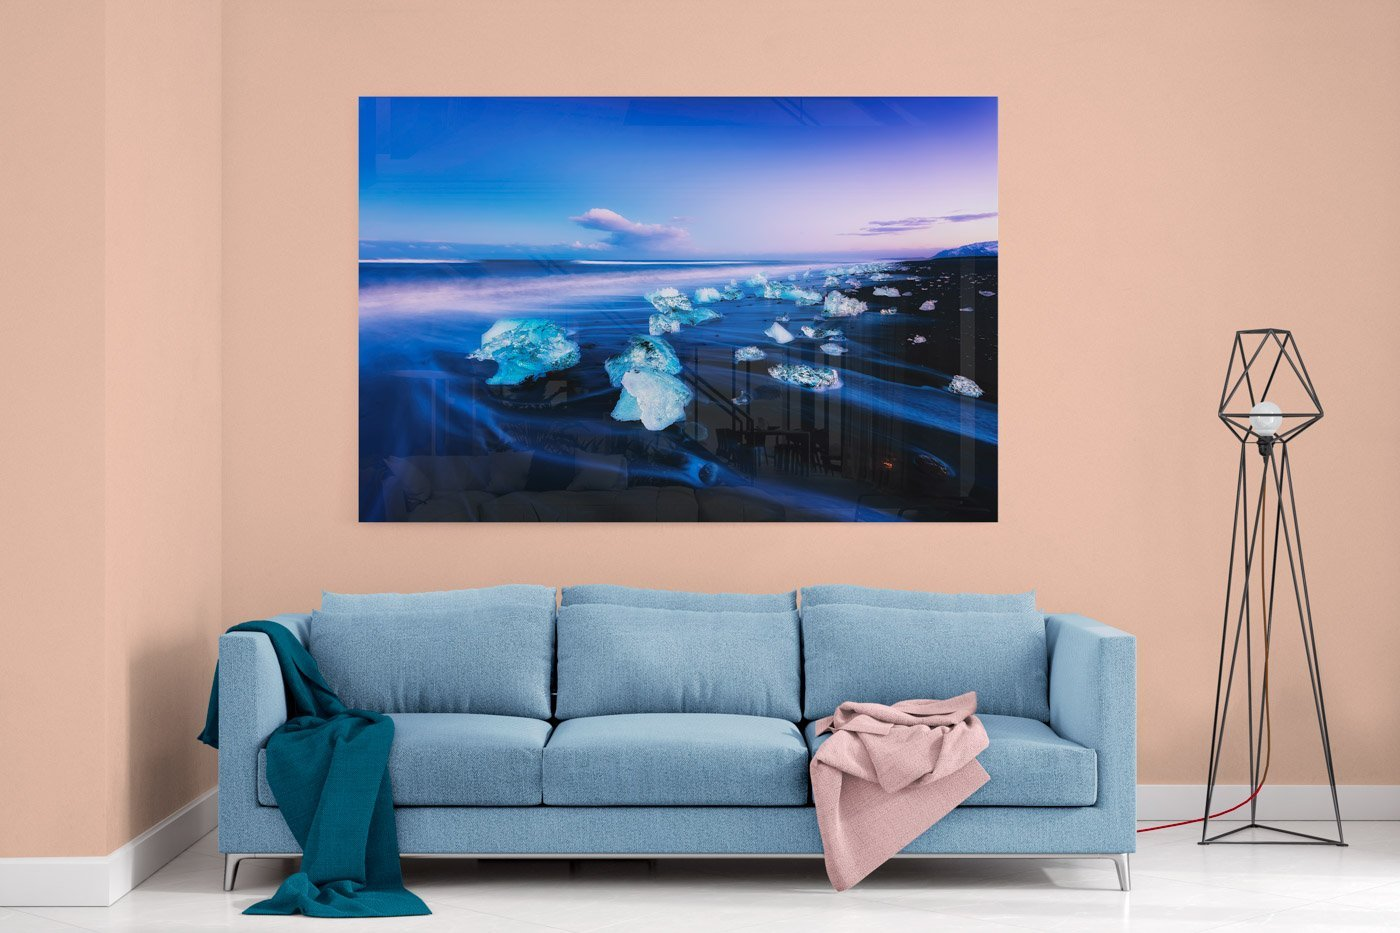 Home Decor mockup. Acrylic feature Wall Art Image by Scott Masterton